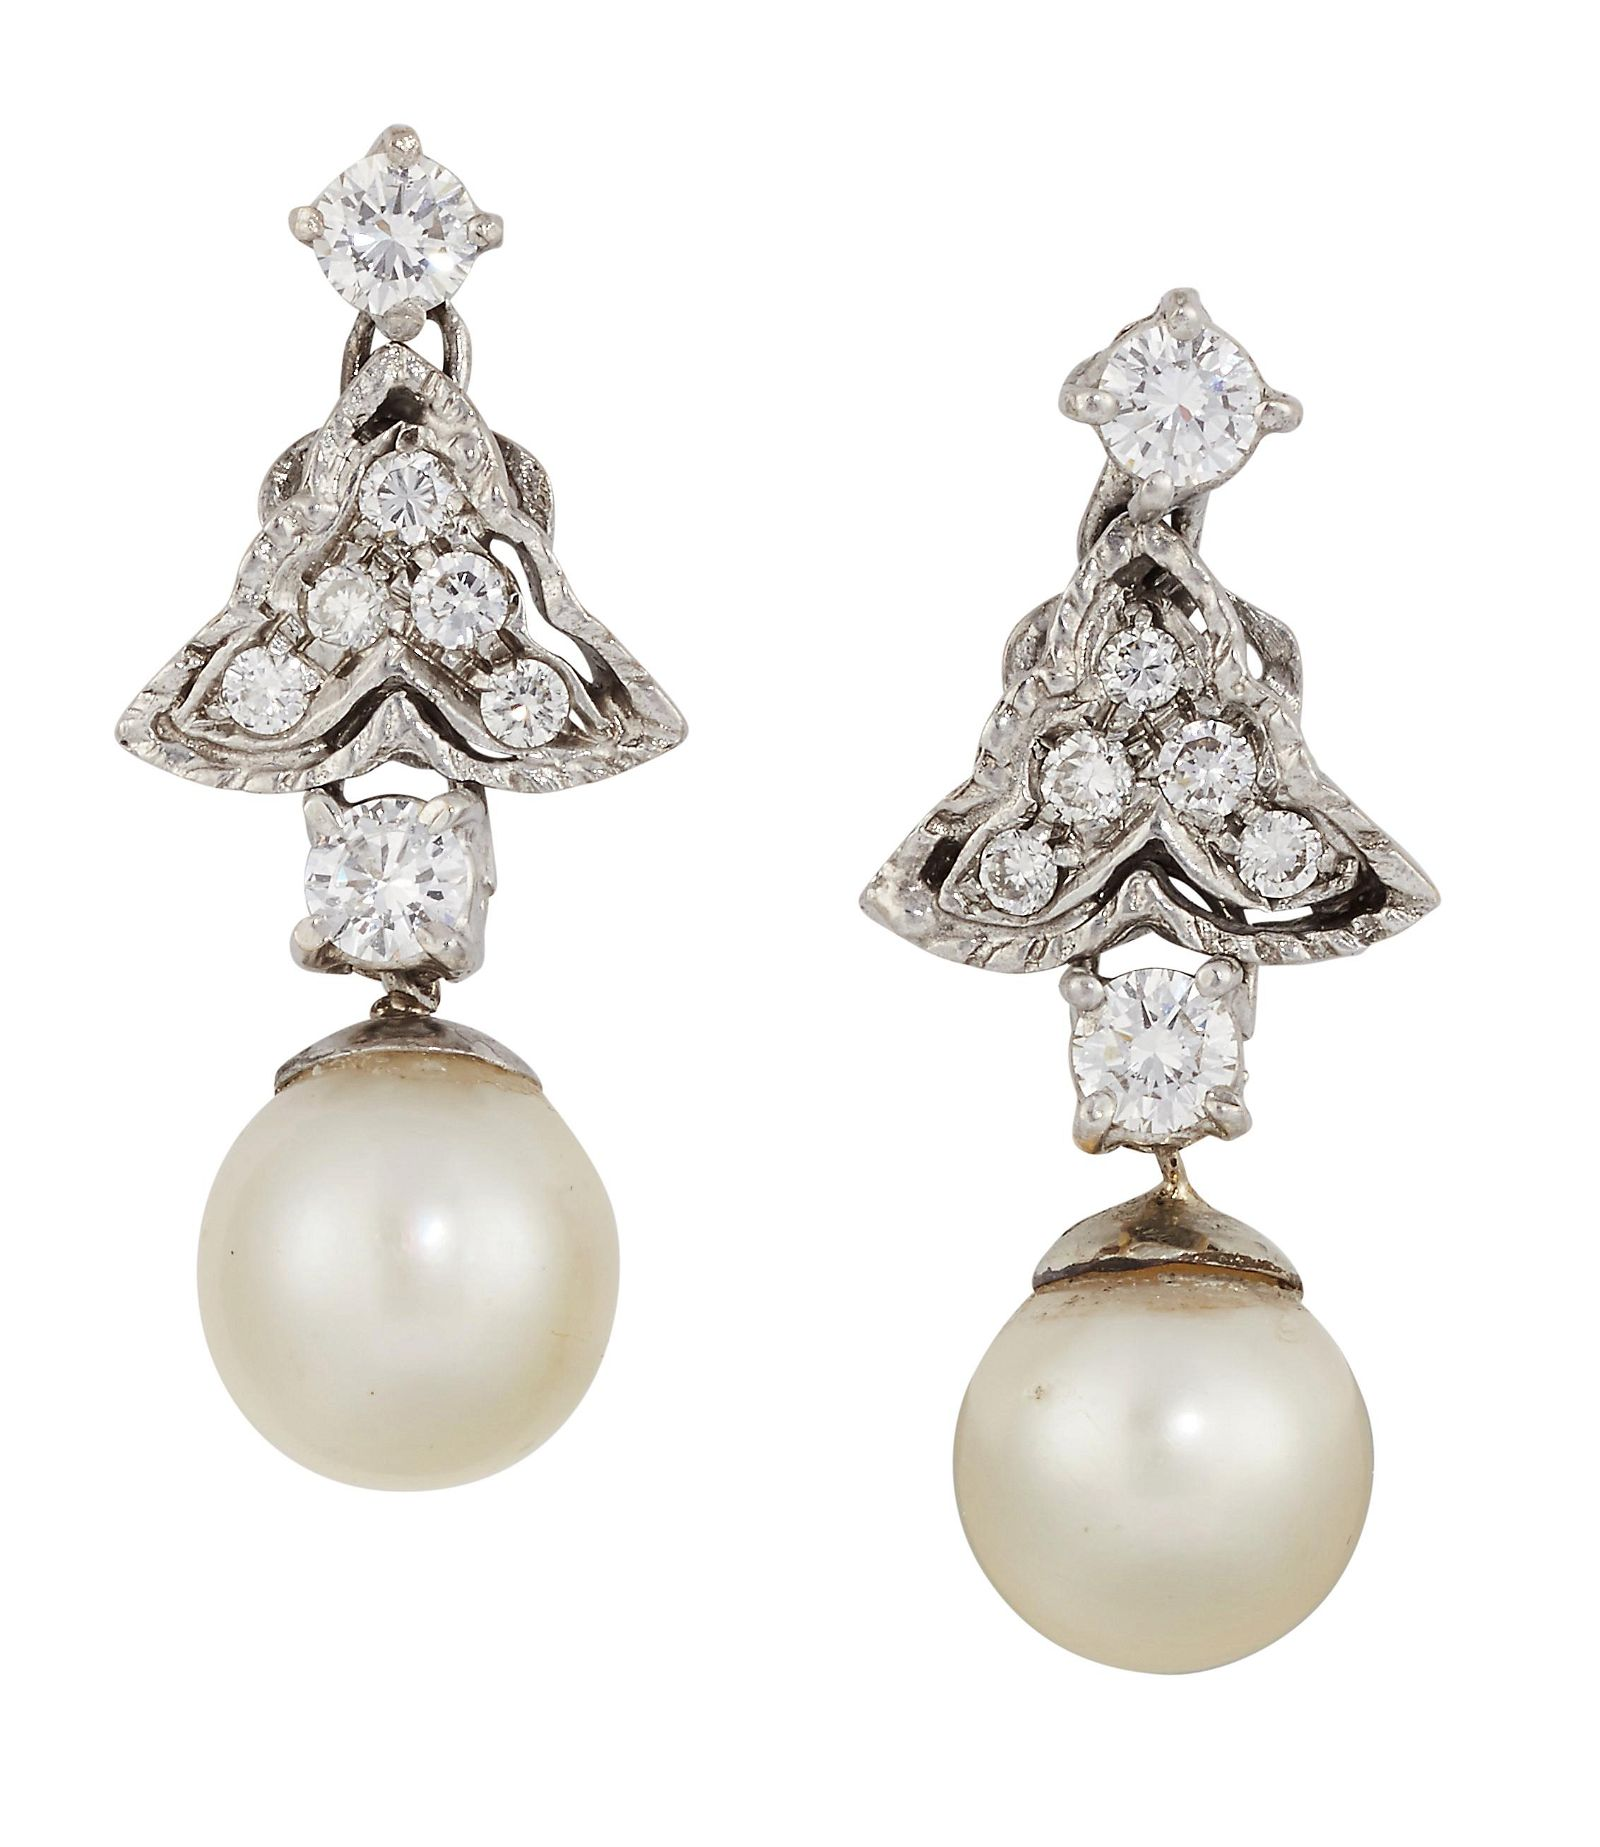 A PAIR OF CULTURED PEARL AND DIAMOND EARRINGS, the